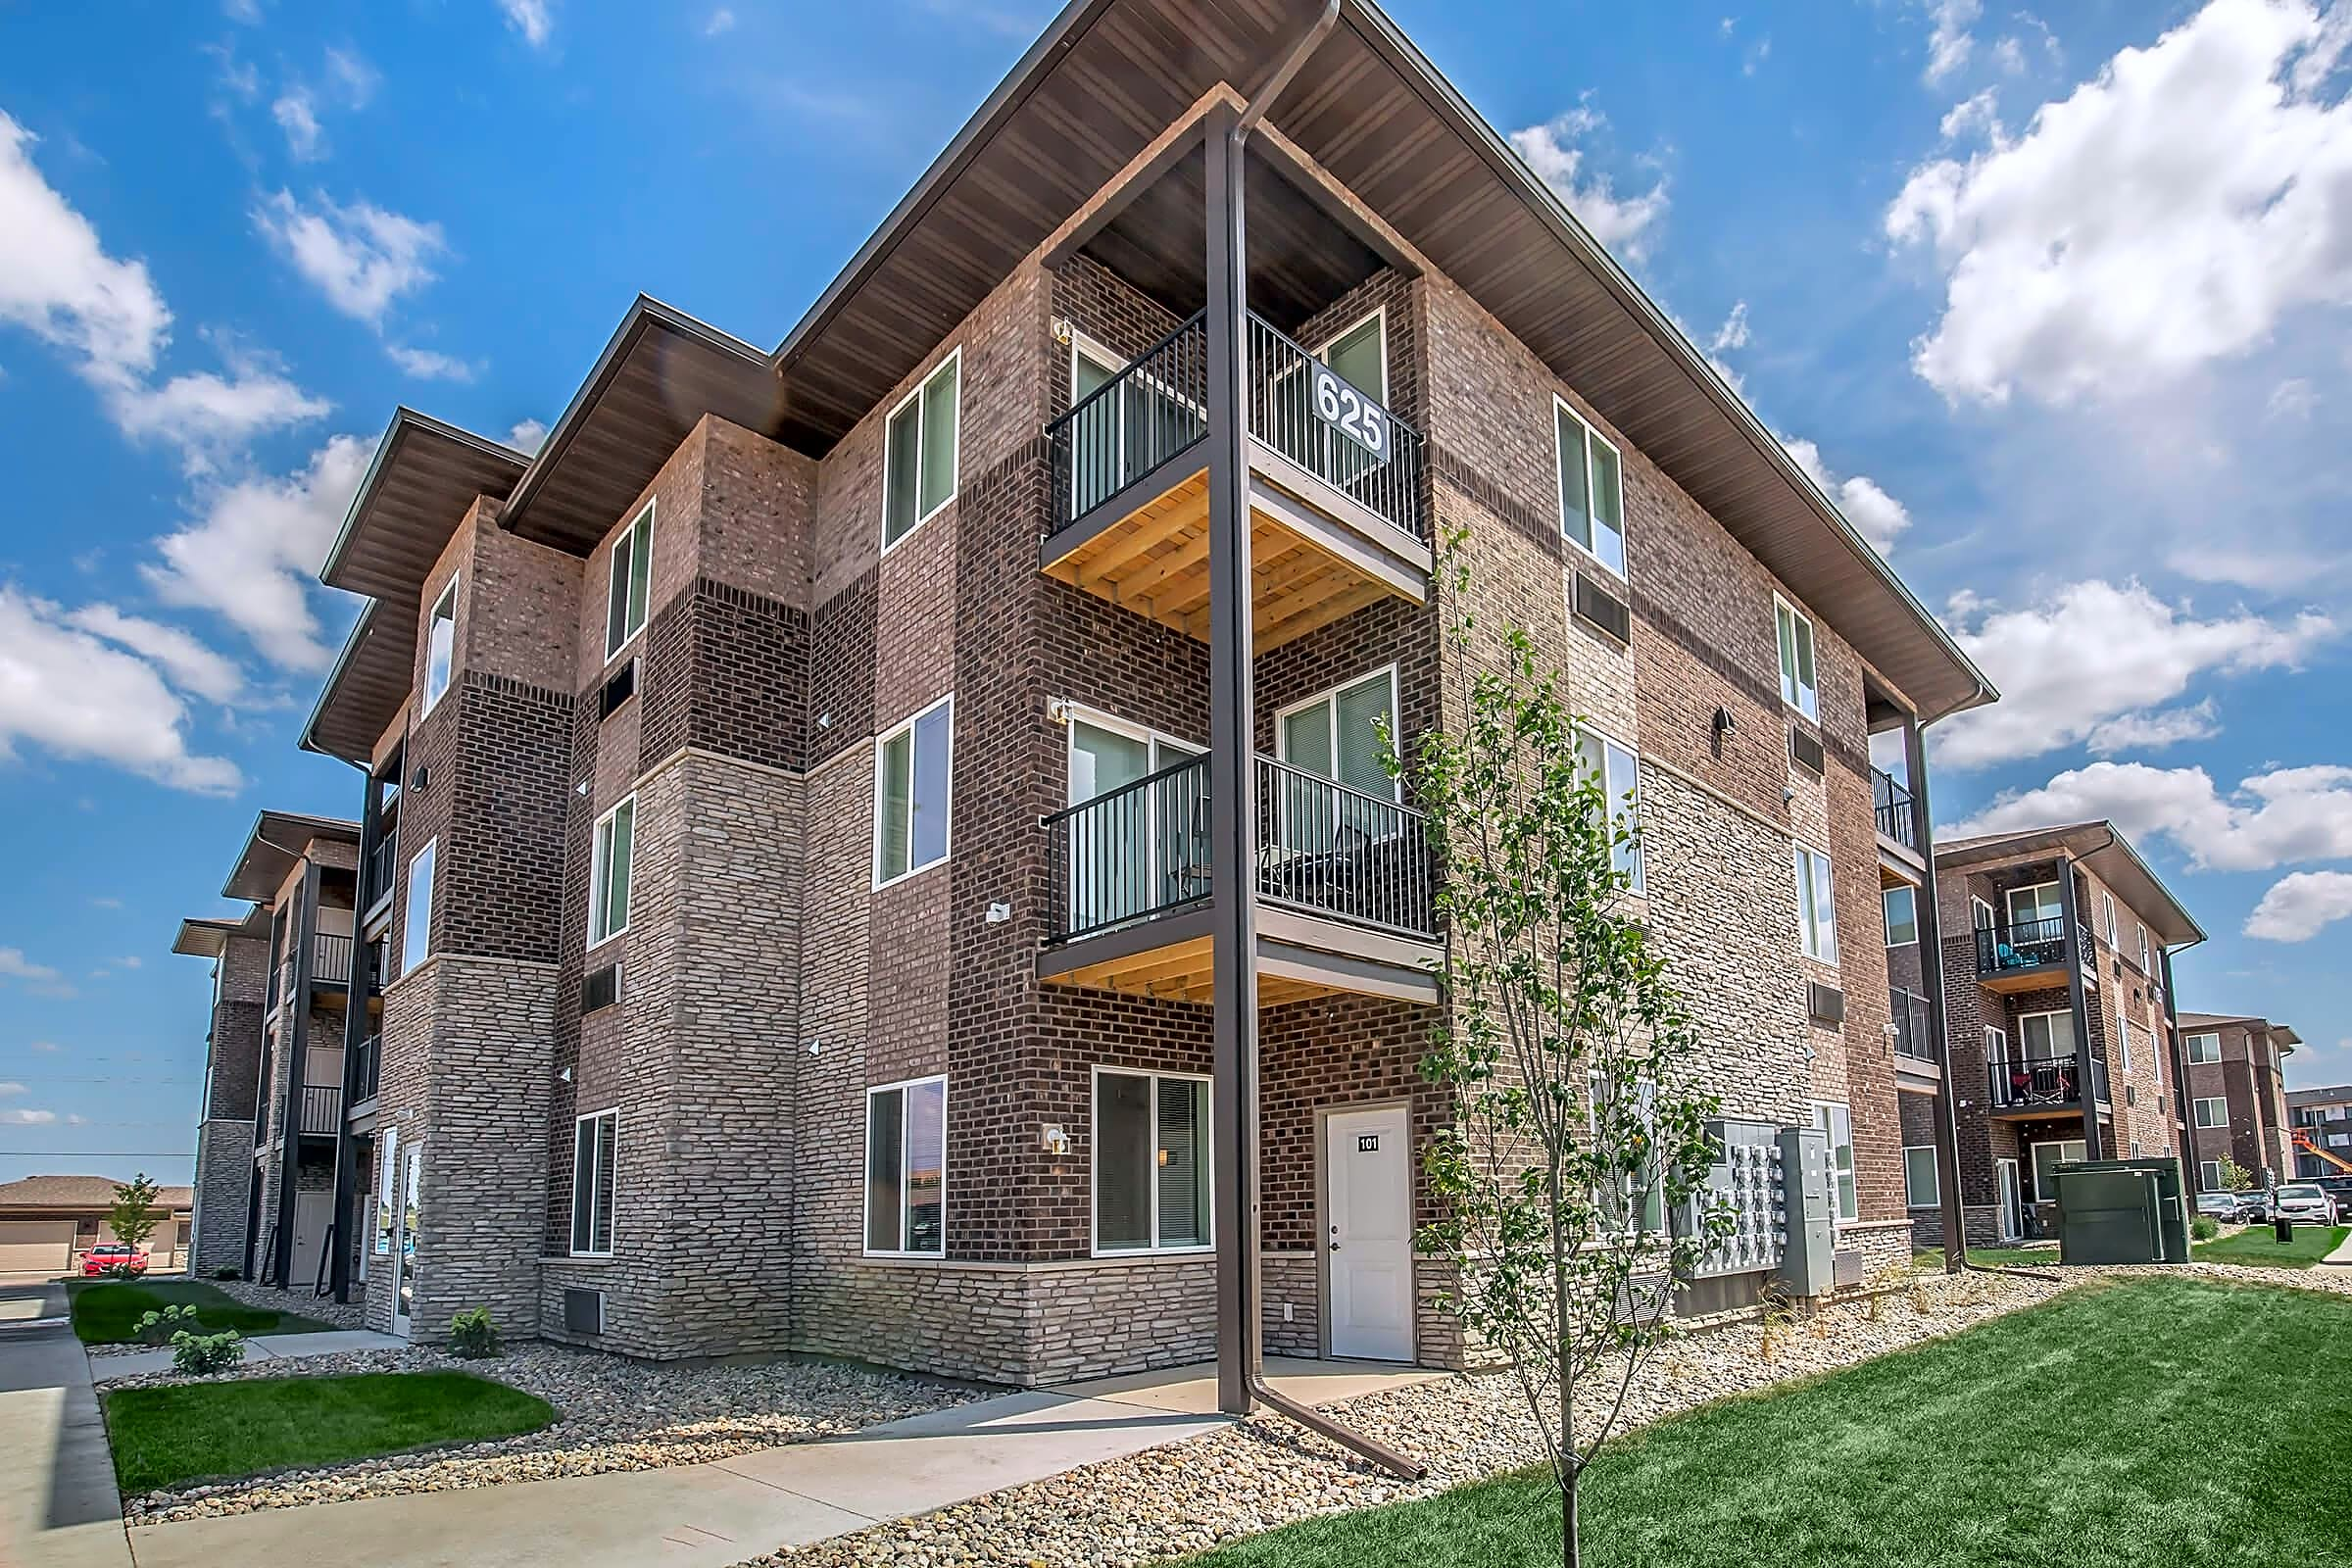 Apartments Near Kaplan University-Des Moines Campus The Allure at 141 for Kaplan University-Des Moines Campus Students in Urbandale, IA